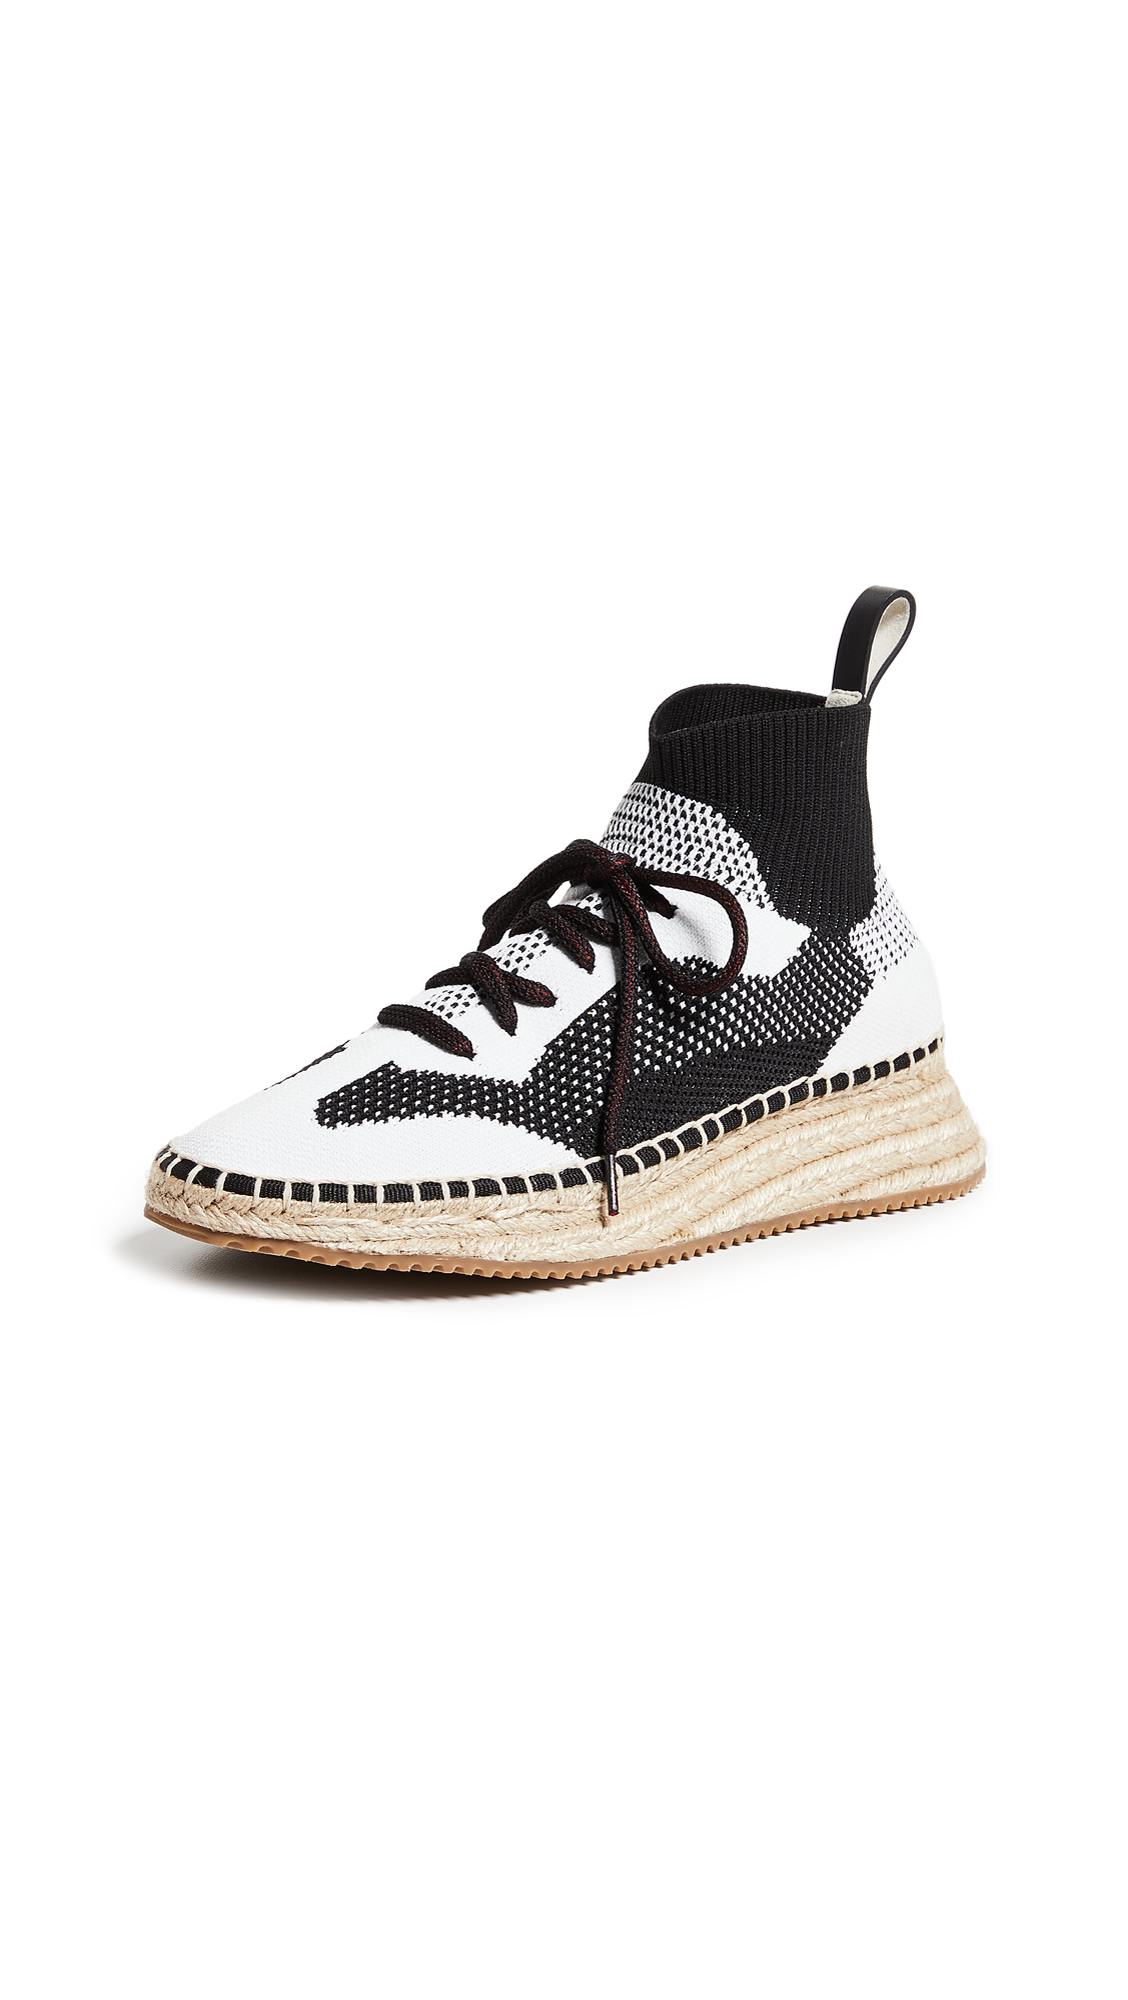 Alexander Wang Dakota Knit Espadrilles - Black/White/Grey